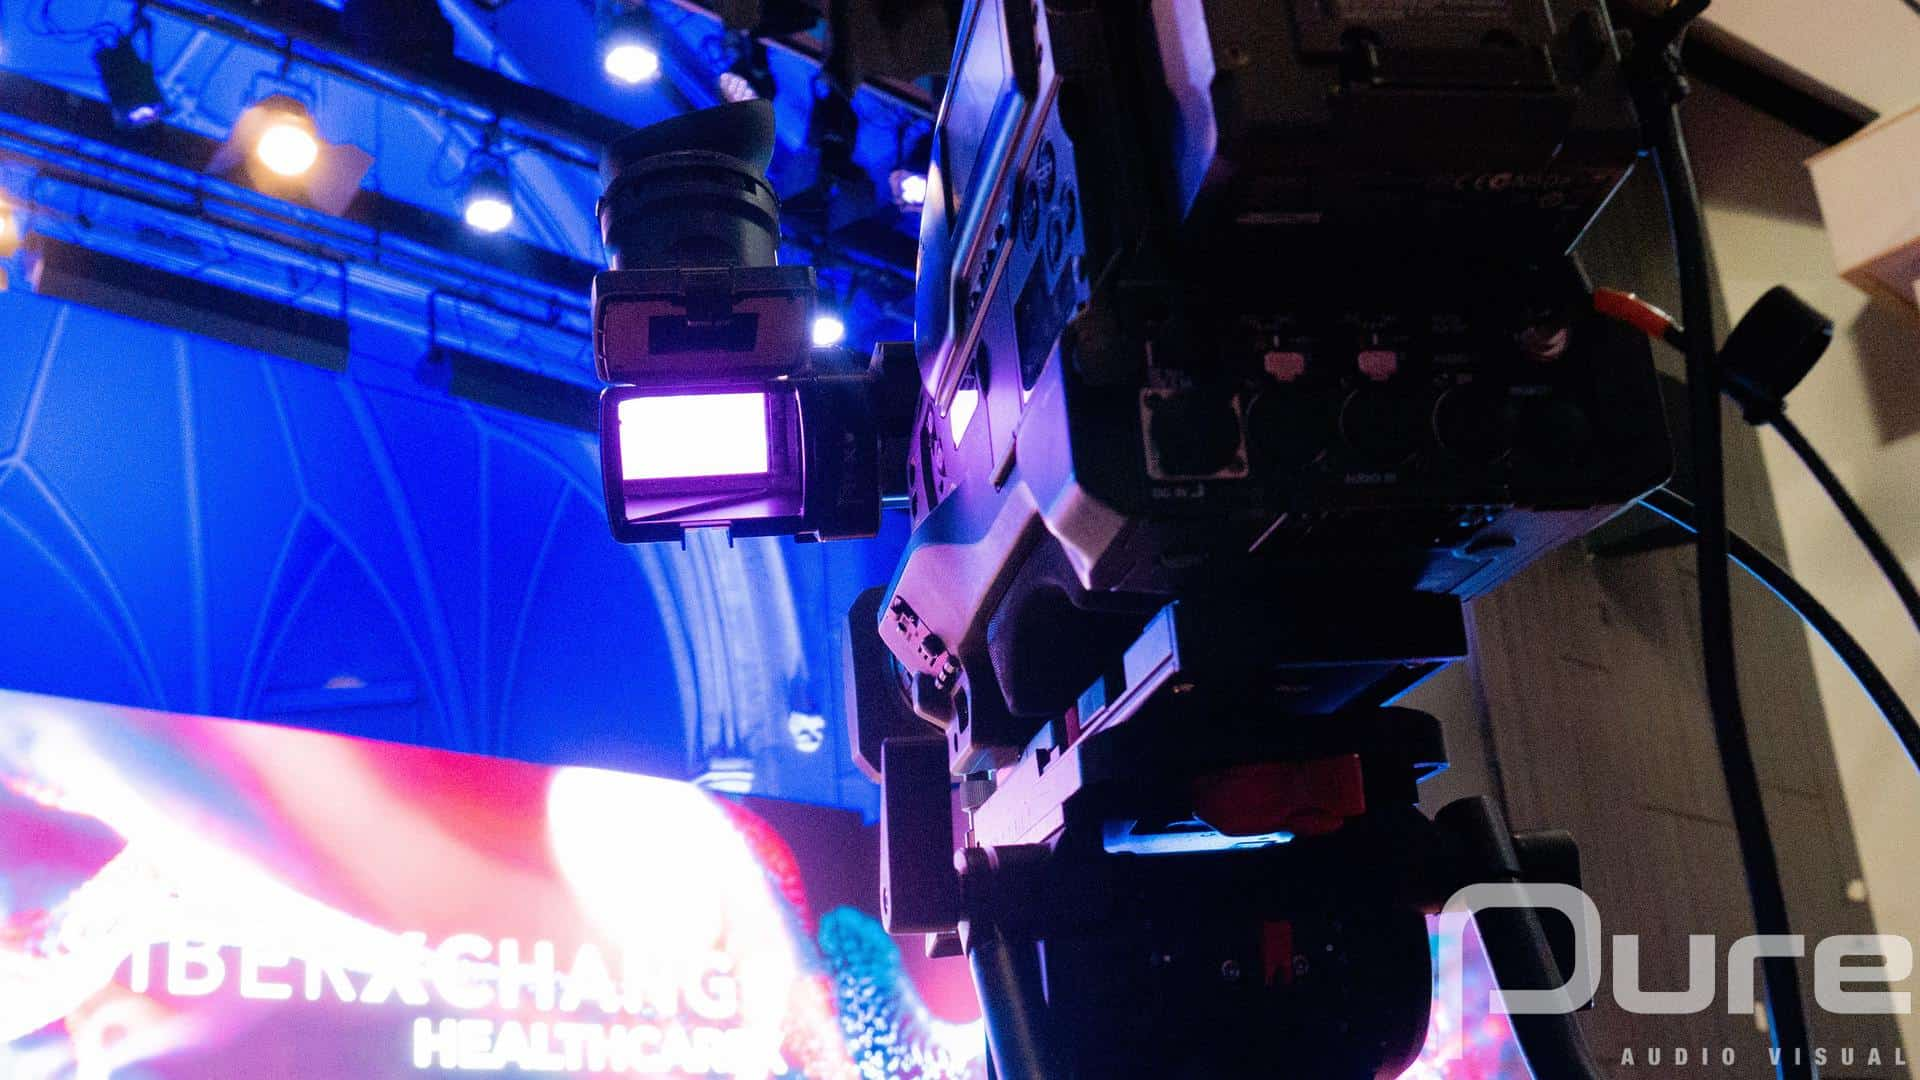 audio visual production for hybrid events